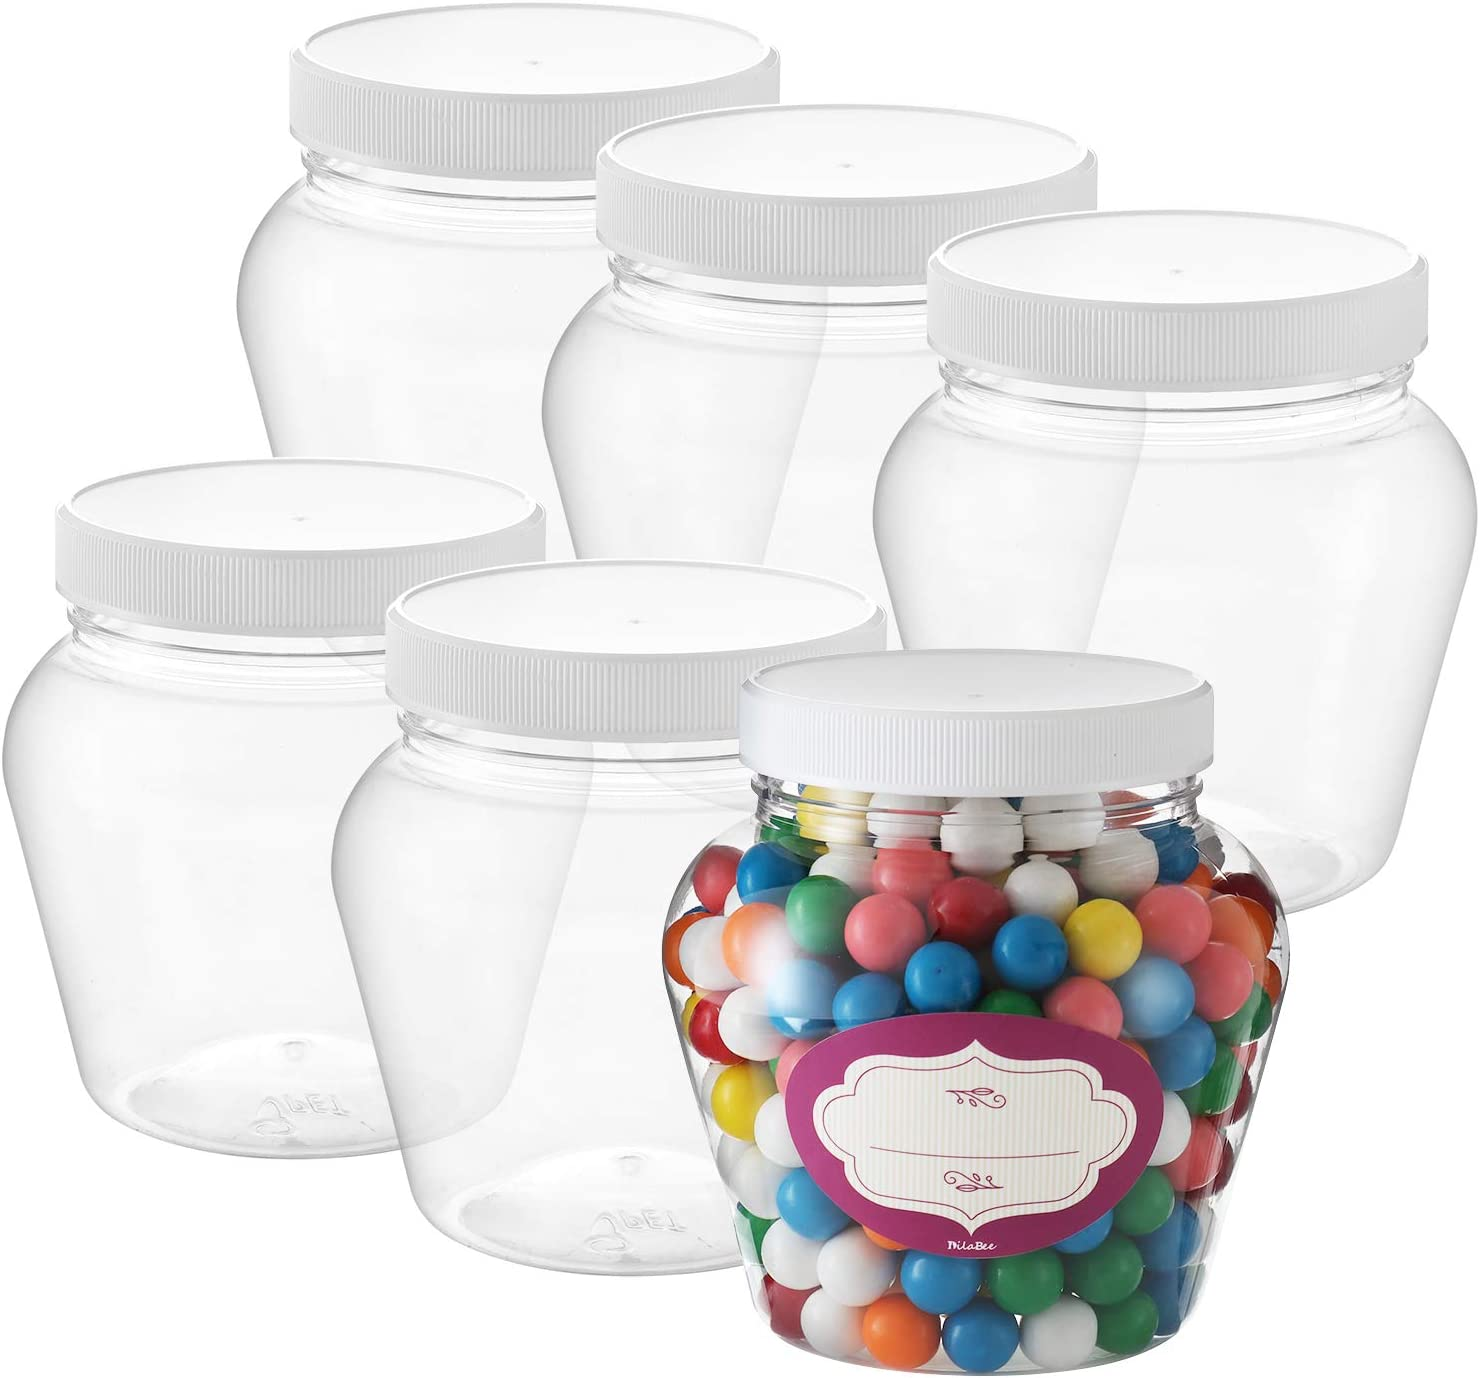 Pack of 6 - Round Clear Plastic Jars - Empty Plastic Storage containers with Lids - Plastic Jar with Air Tight Lids – Candy Jars – Spice Jars - Food Grade BPA Free Small Jars- (32 Oz)